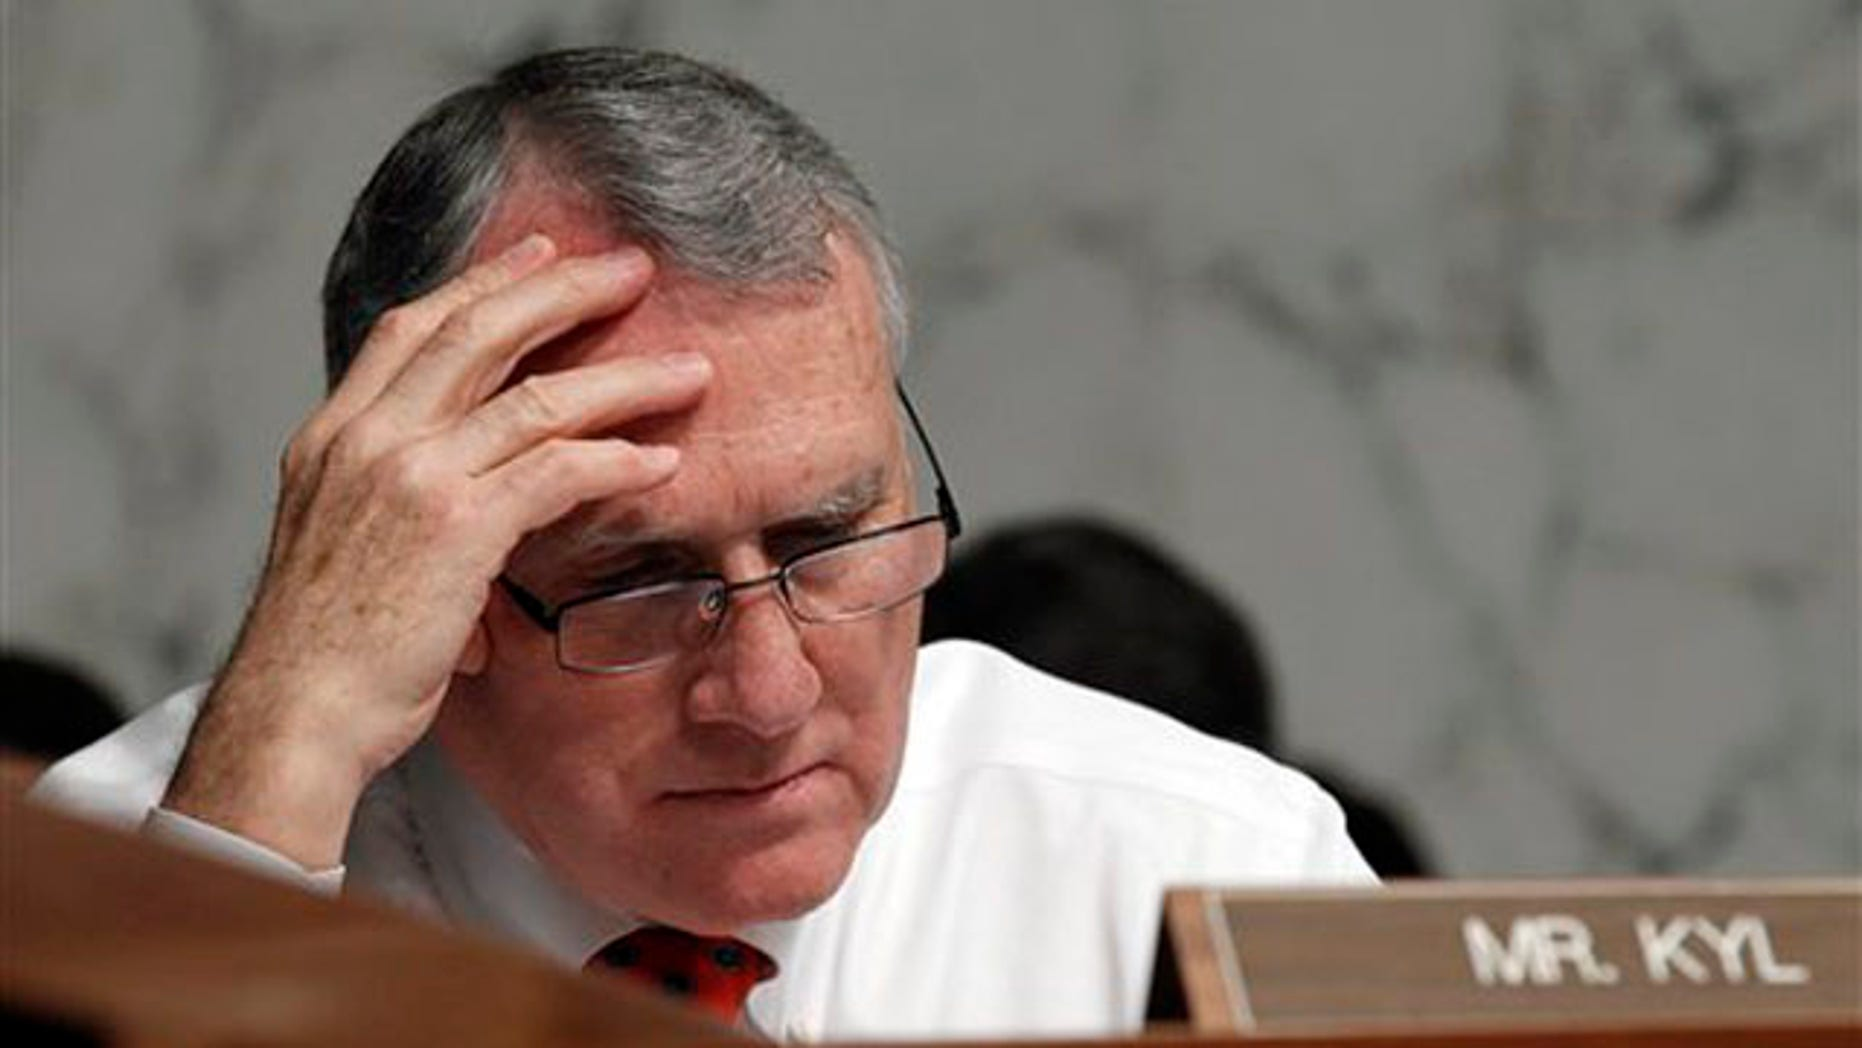 Sen. Jon Kyl listens to opening statements on Capitol Hill in Washington June 28 during the confirmation hearing for Supreme Court nominee Elena Kagan. (AP Photo)